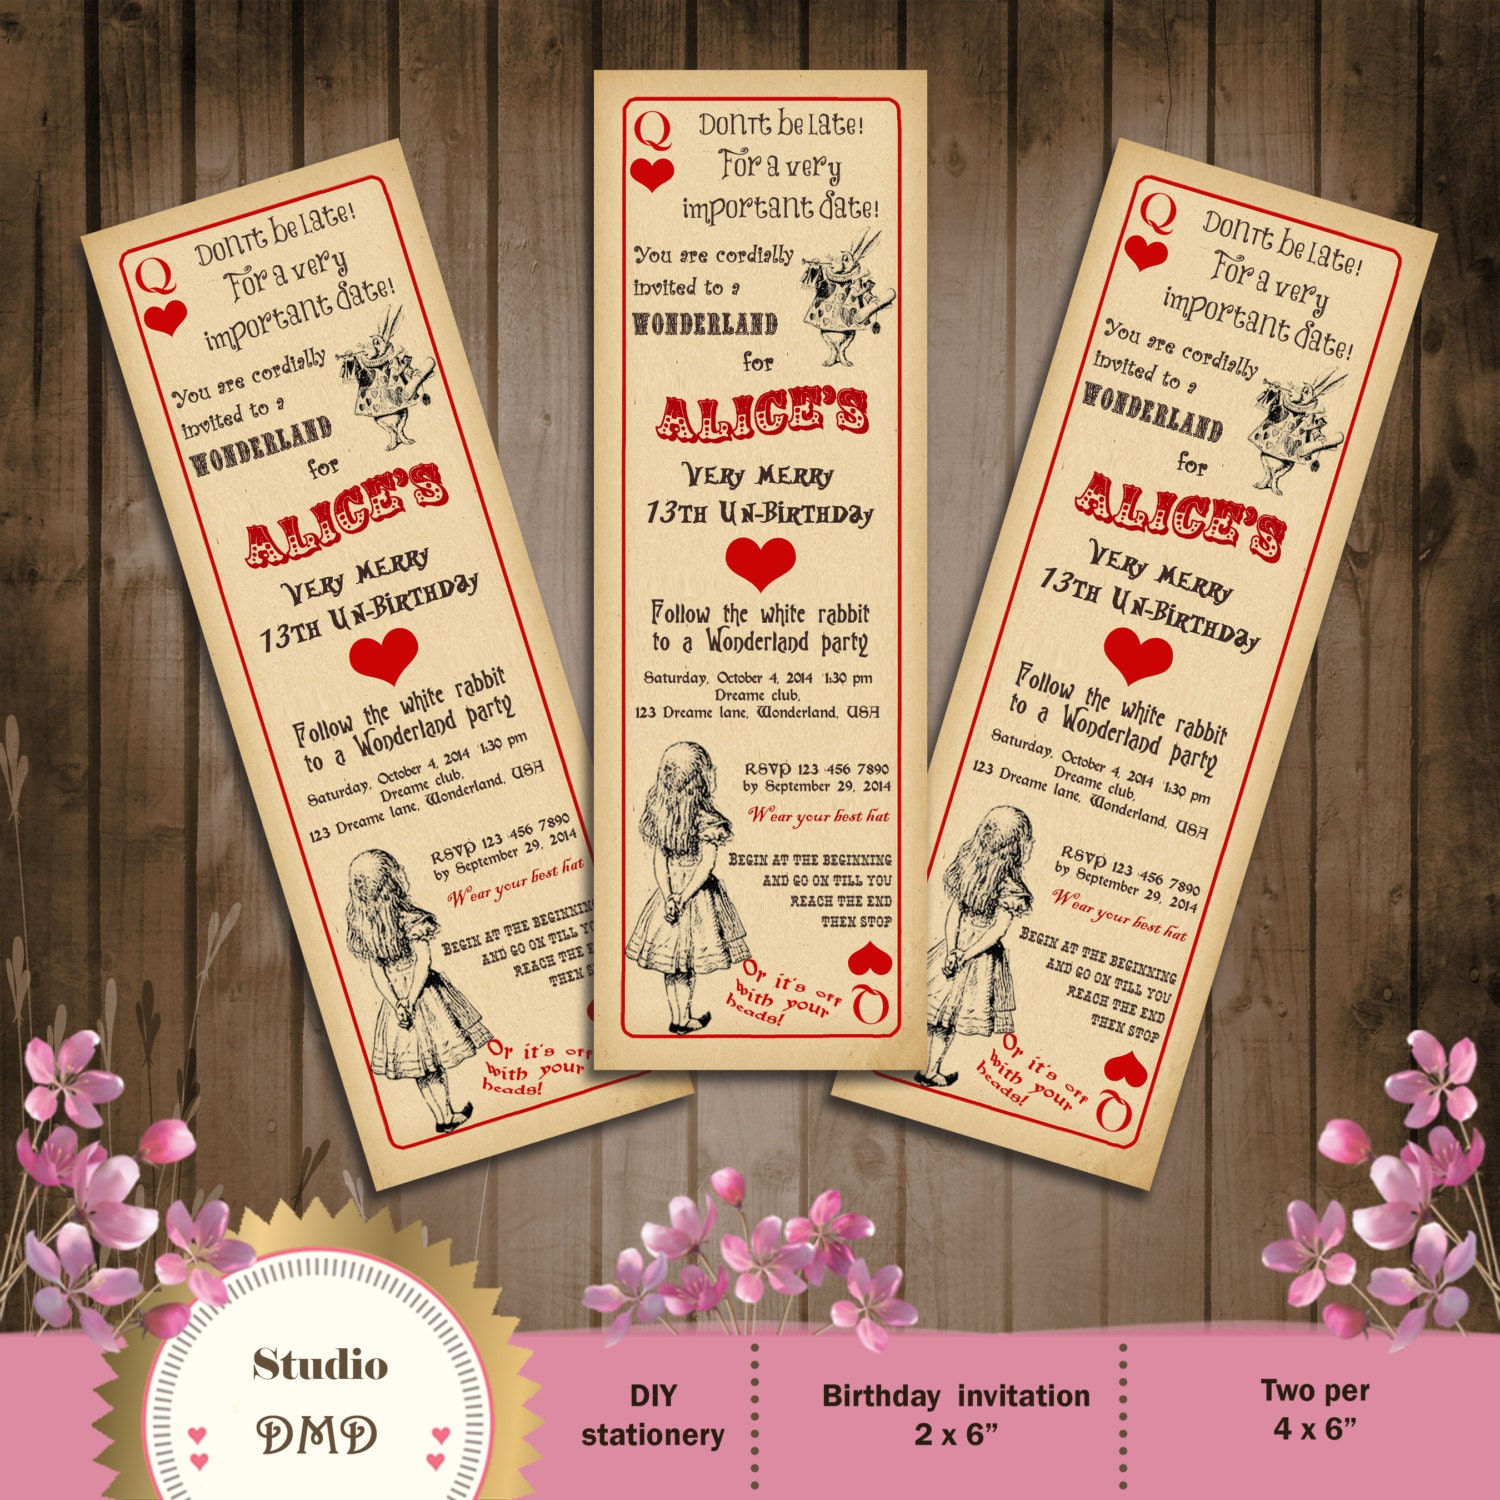 design christmas party invitations free - Picture Ideas References